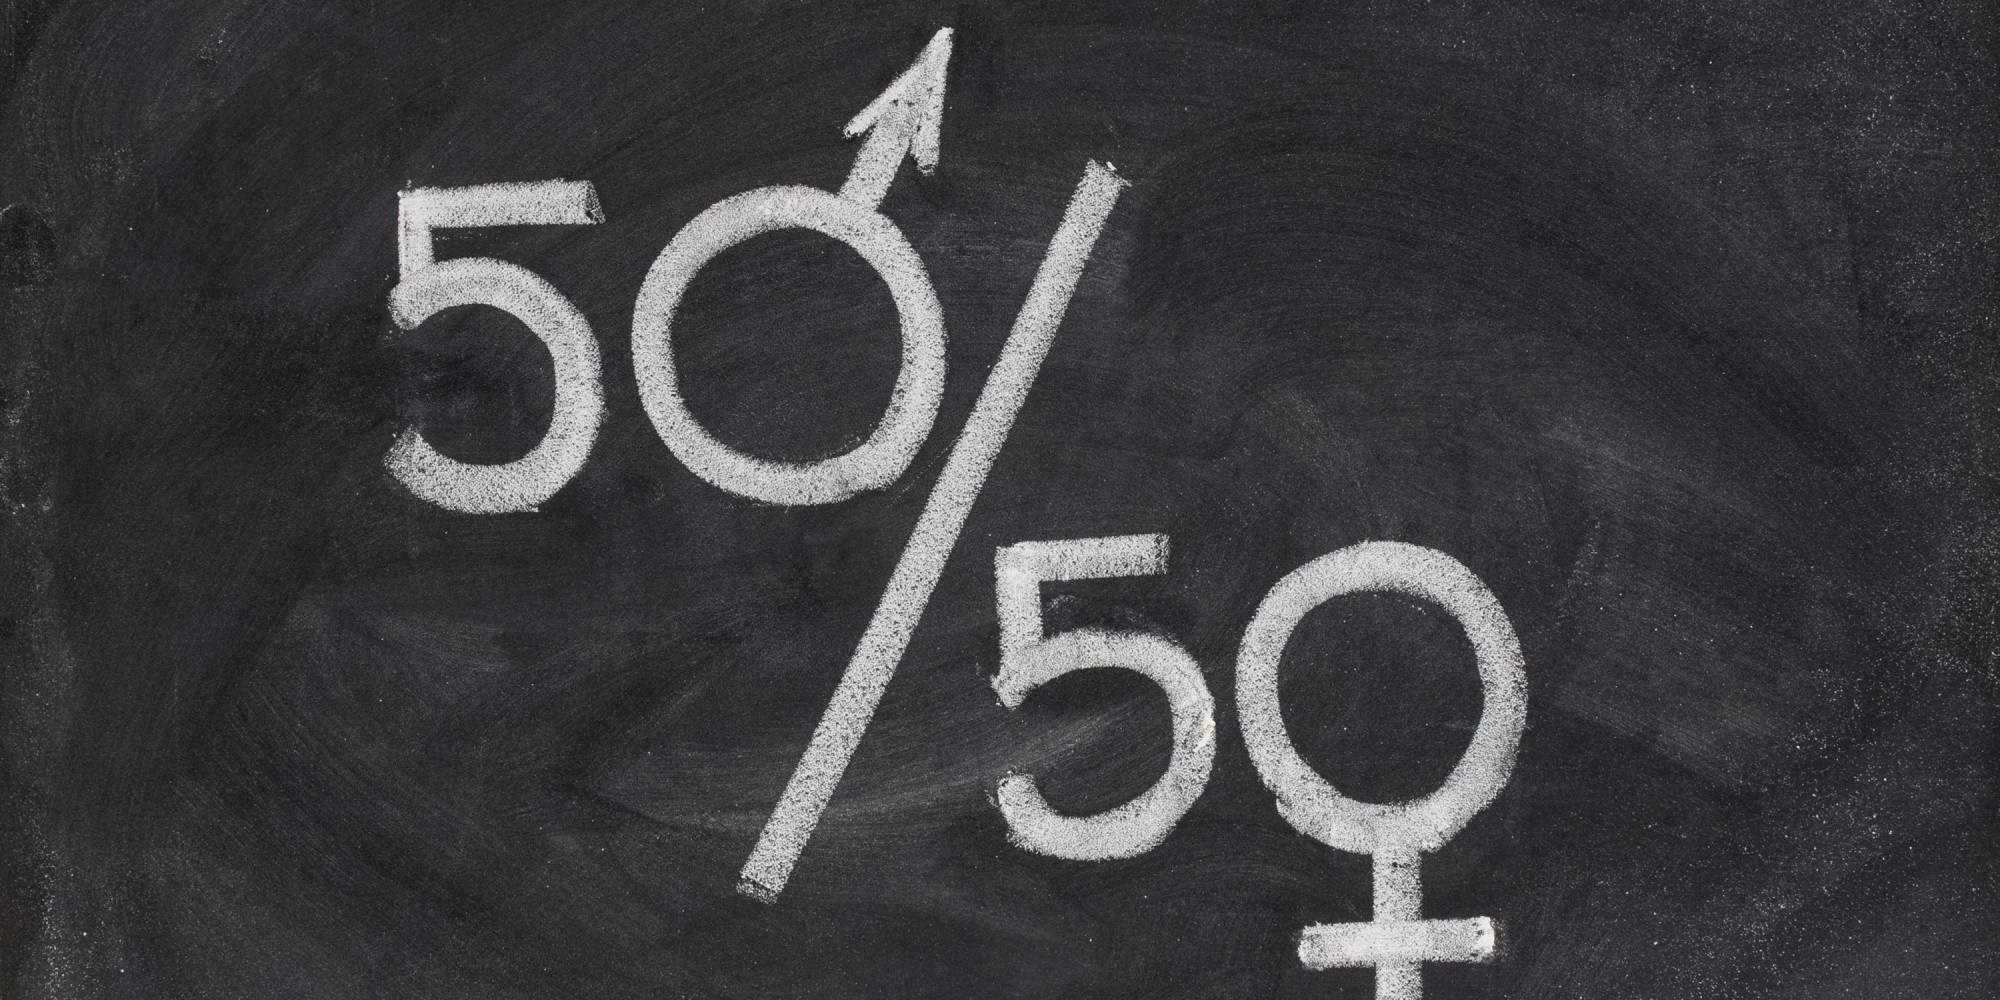 gender equality and breaking the norm Gender equality resources welcome to the gender equality resources page on the office for the public sector website we plan to regularly add articles, links and other resources that we hope.